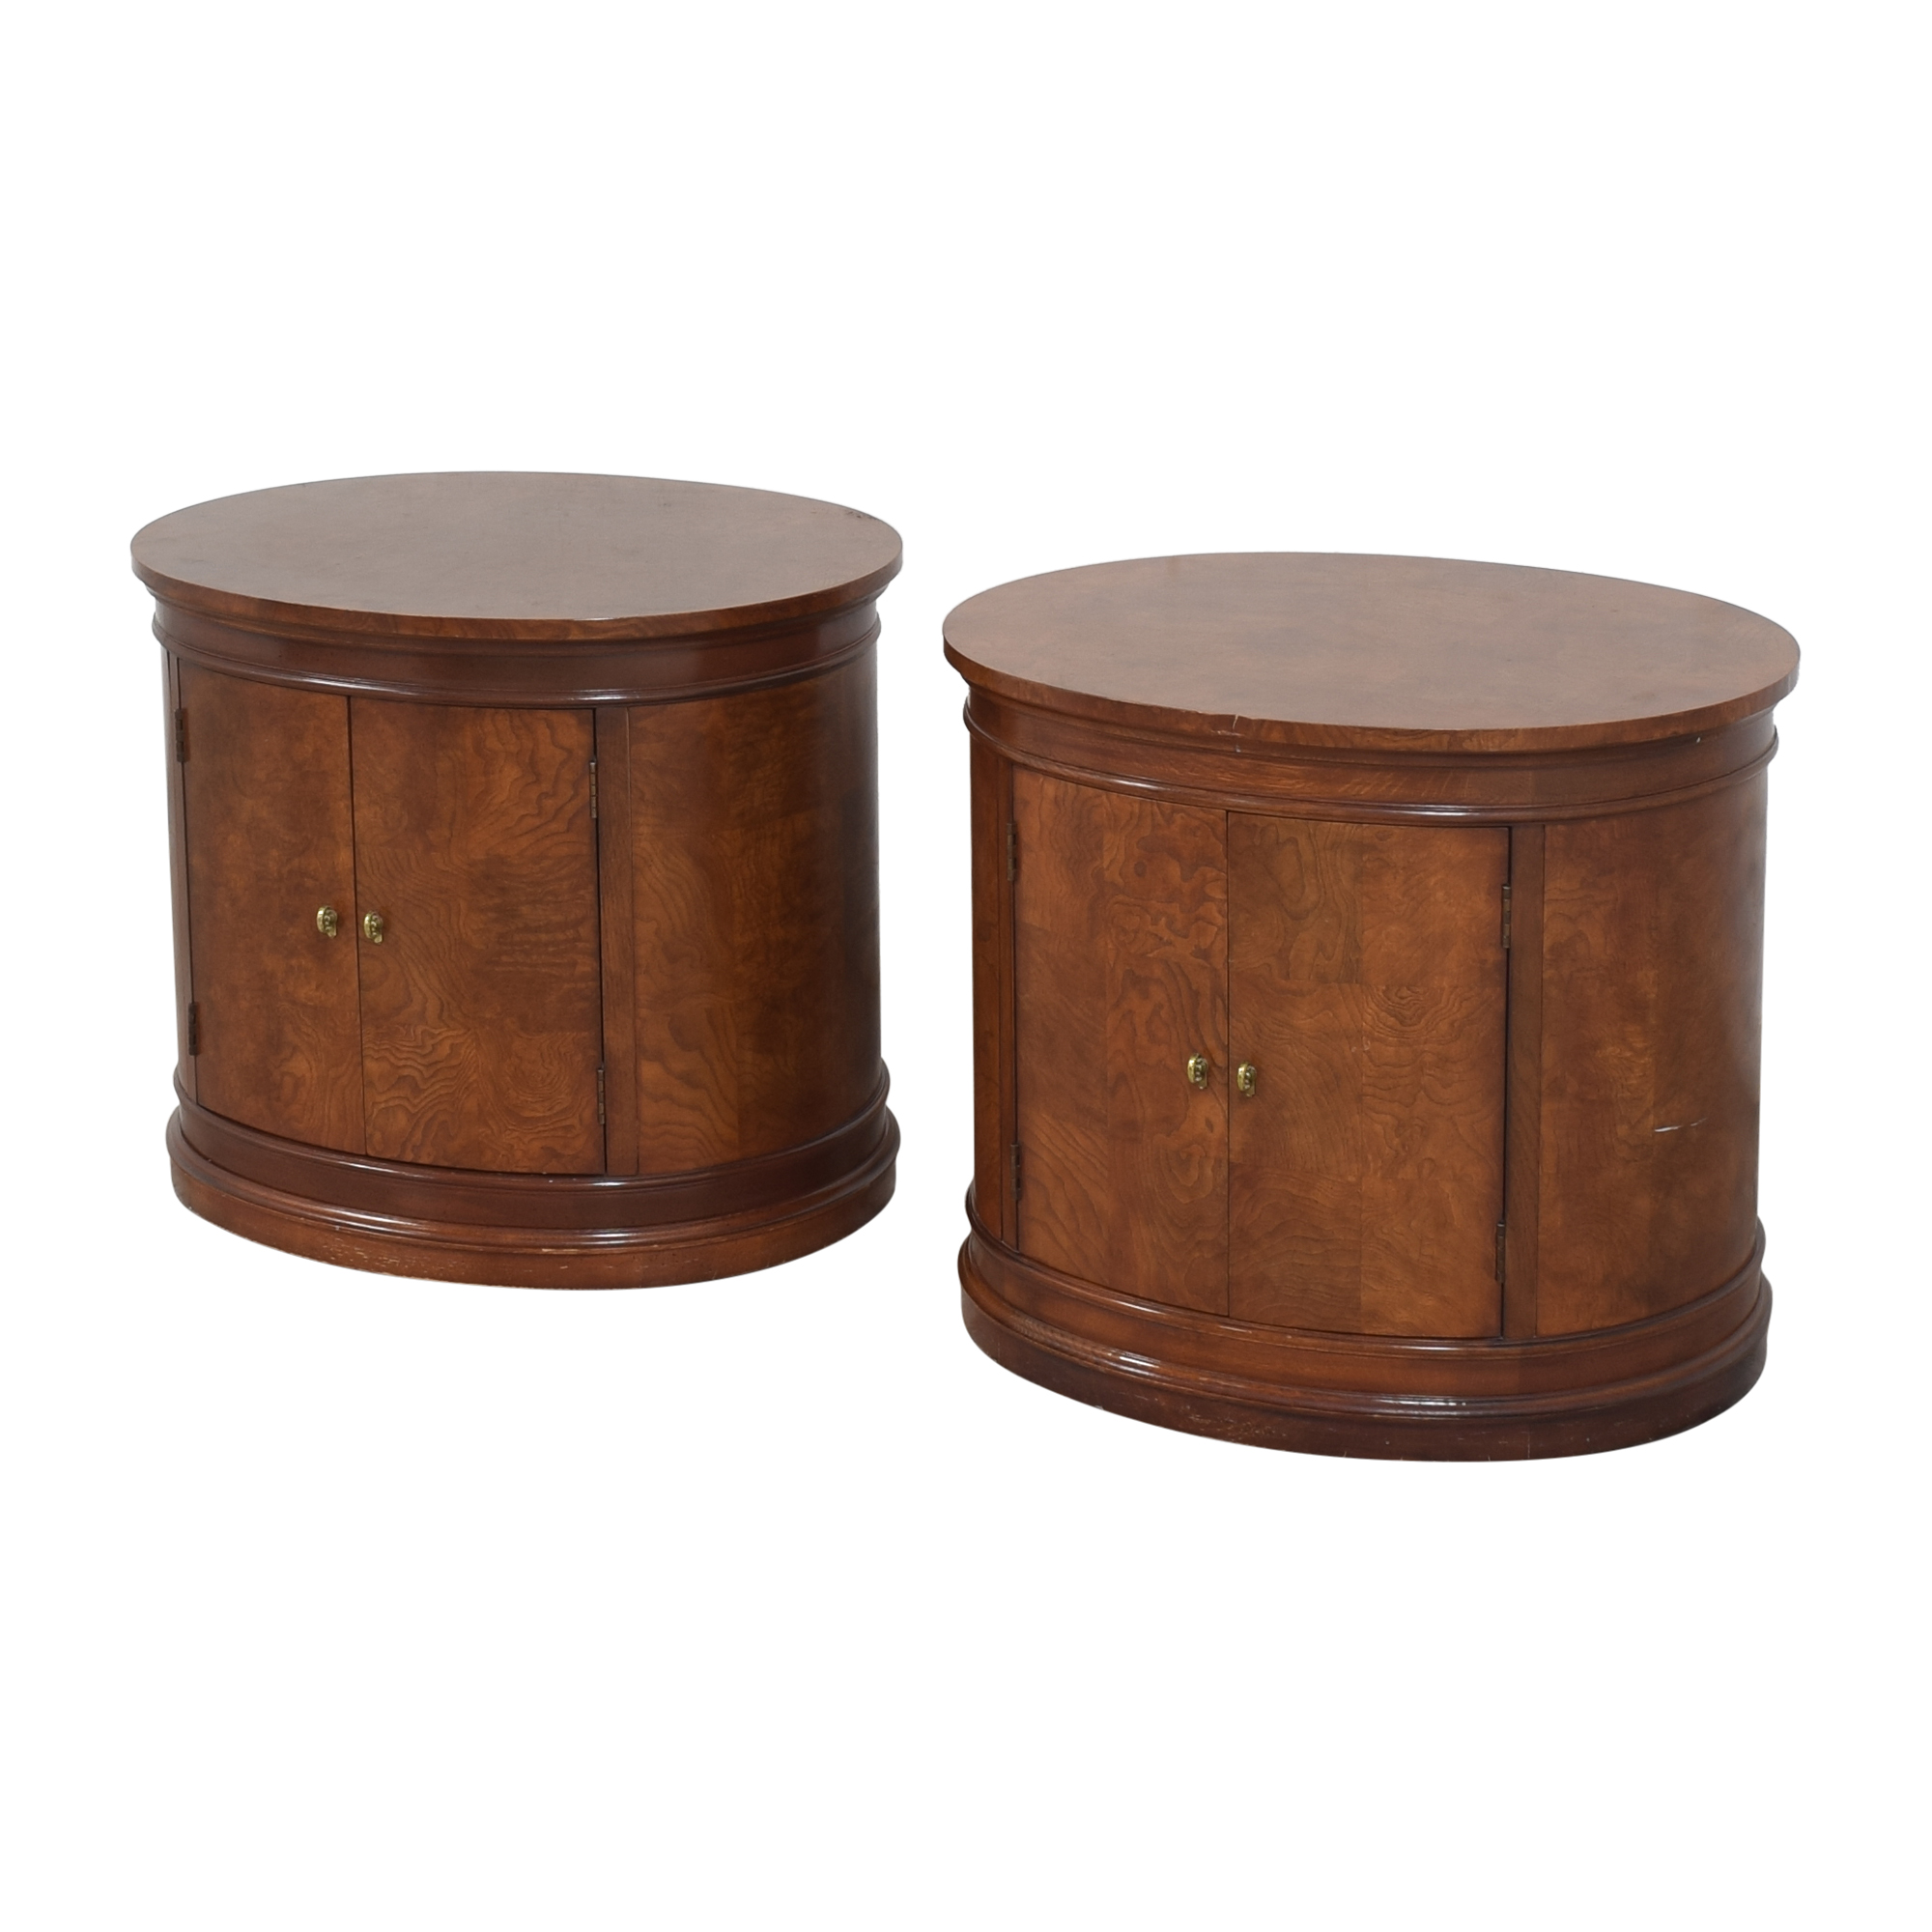 Hickory White Oval Nightstands / Tables